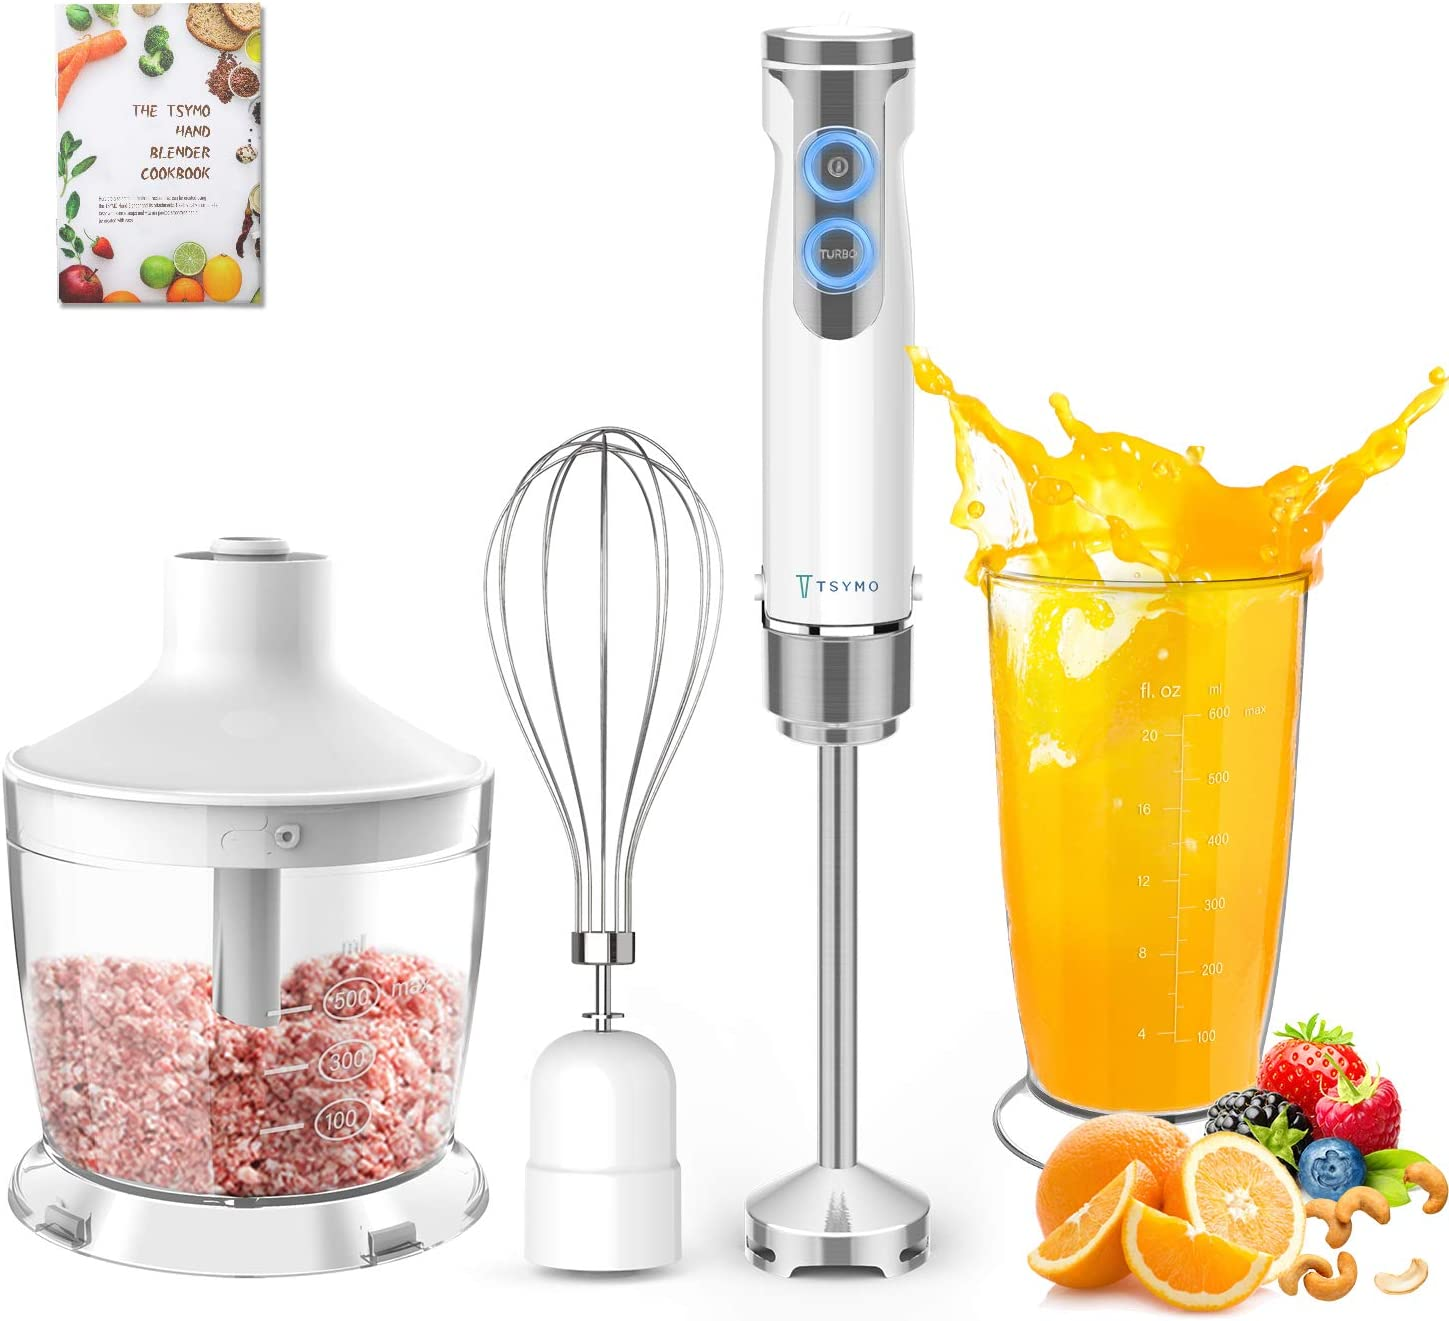 TSYMO 800W Hand Immersion Blender, 4-in-1 Hand Blender with 6-Speed+Turbo, 304 Stainless Steel Stick Blender, Mixing Cup, Food Chopper, Whisk Attachment for Smoothies, Puree Baby Food, BPA-Free